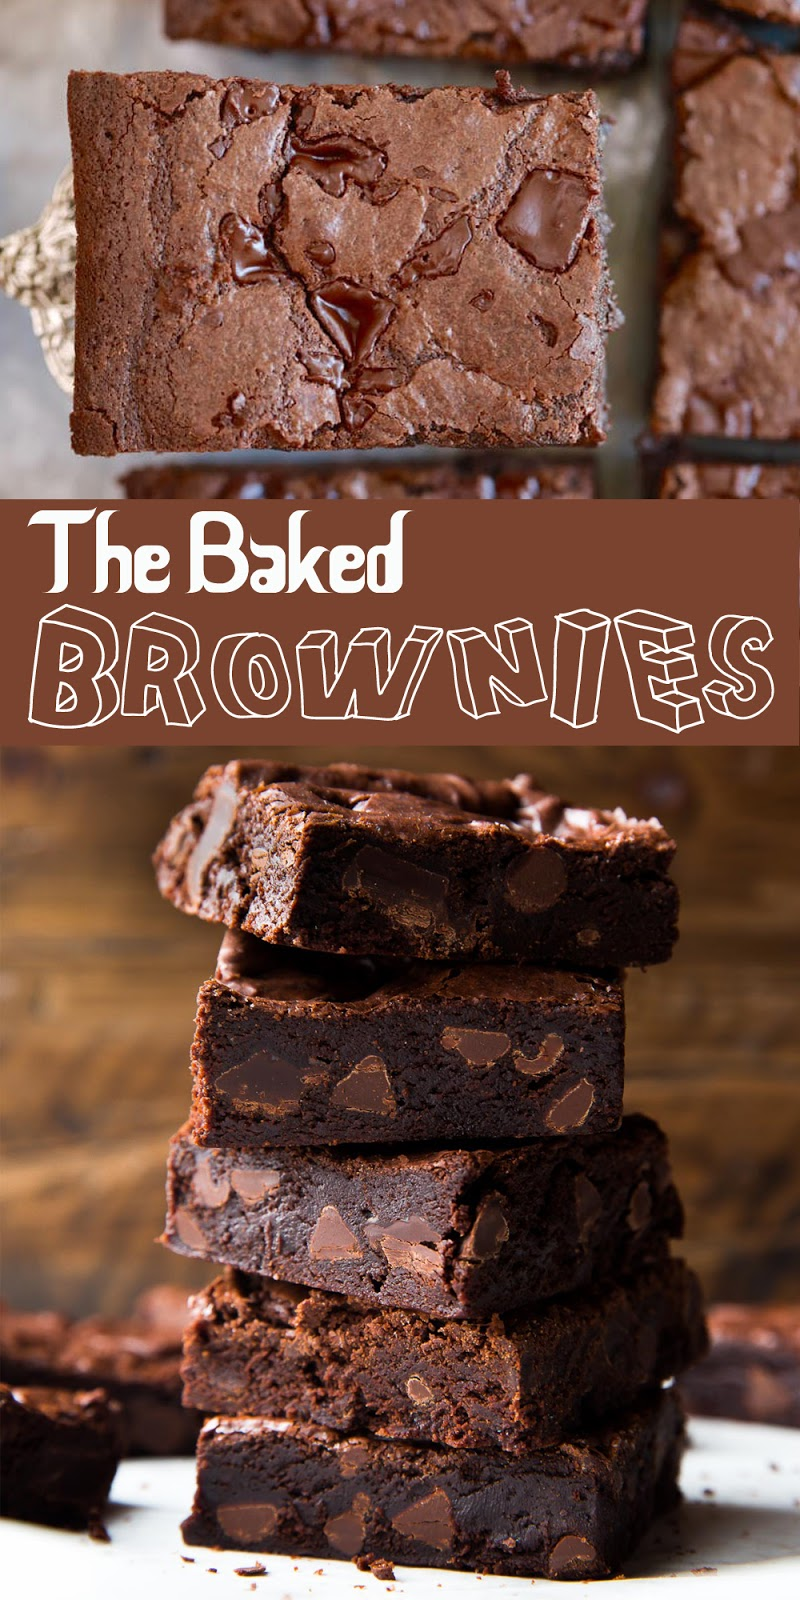 THE BAKED BROWNIES